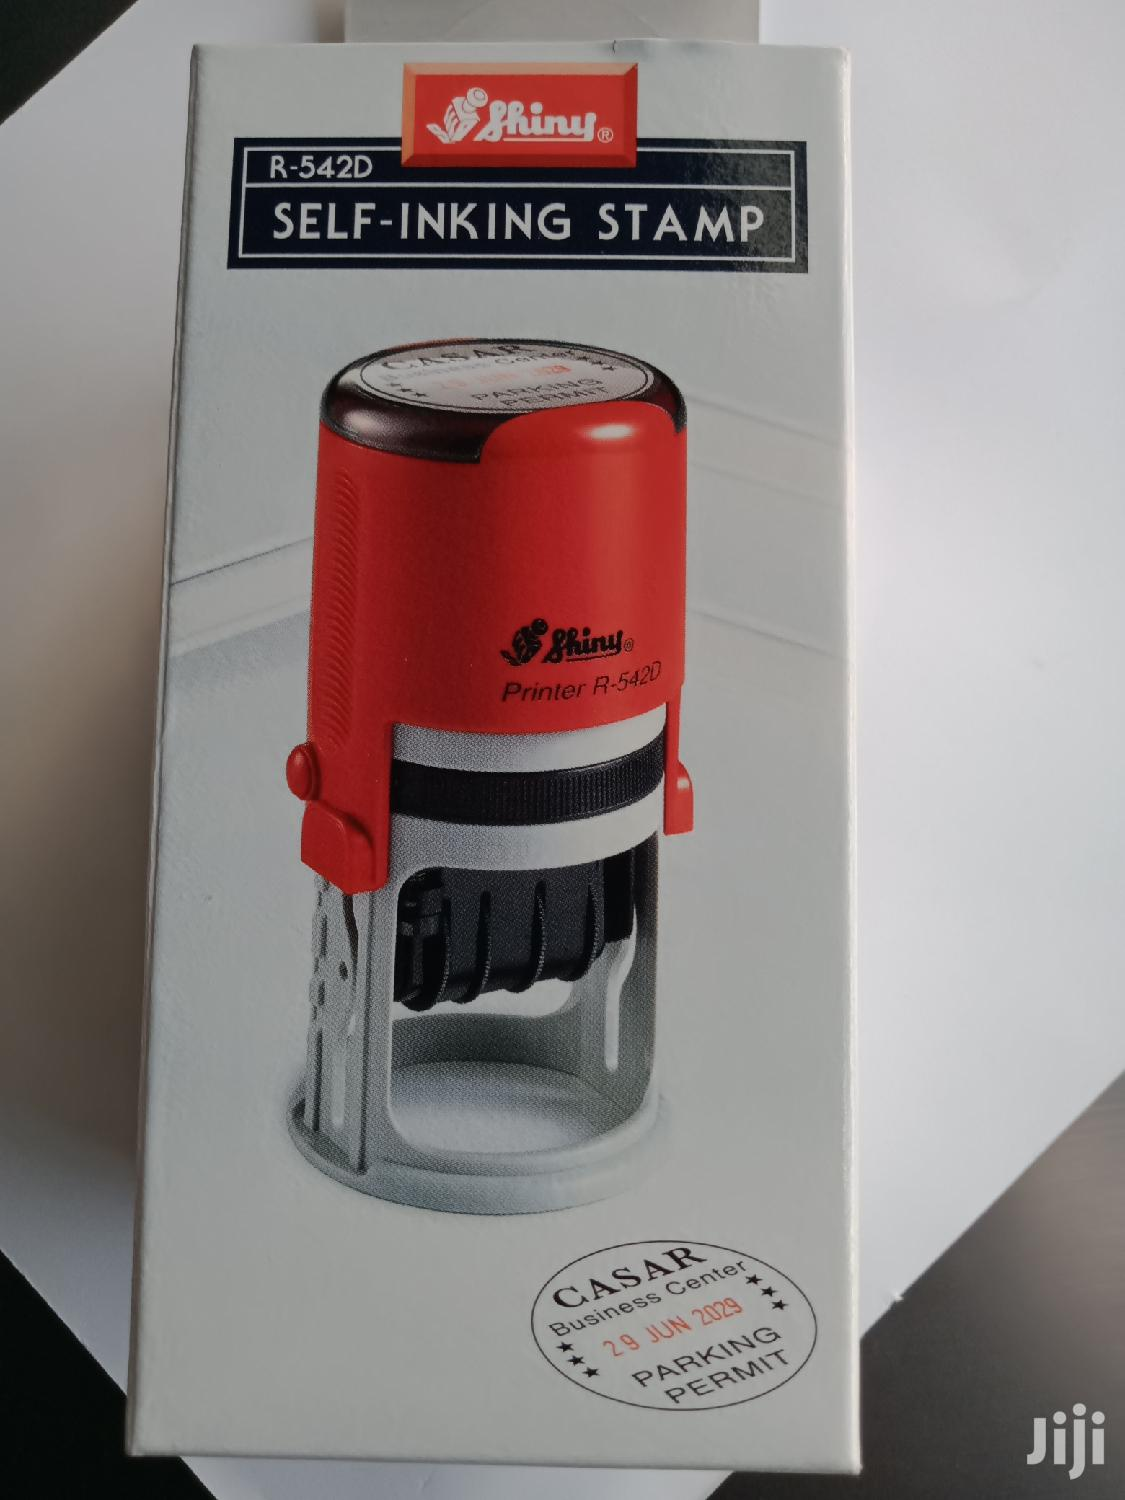 Archive: Self Inking Stamp